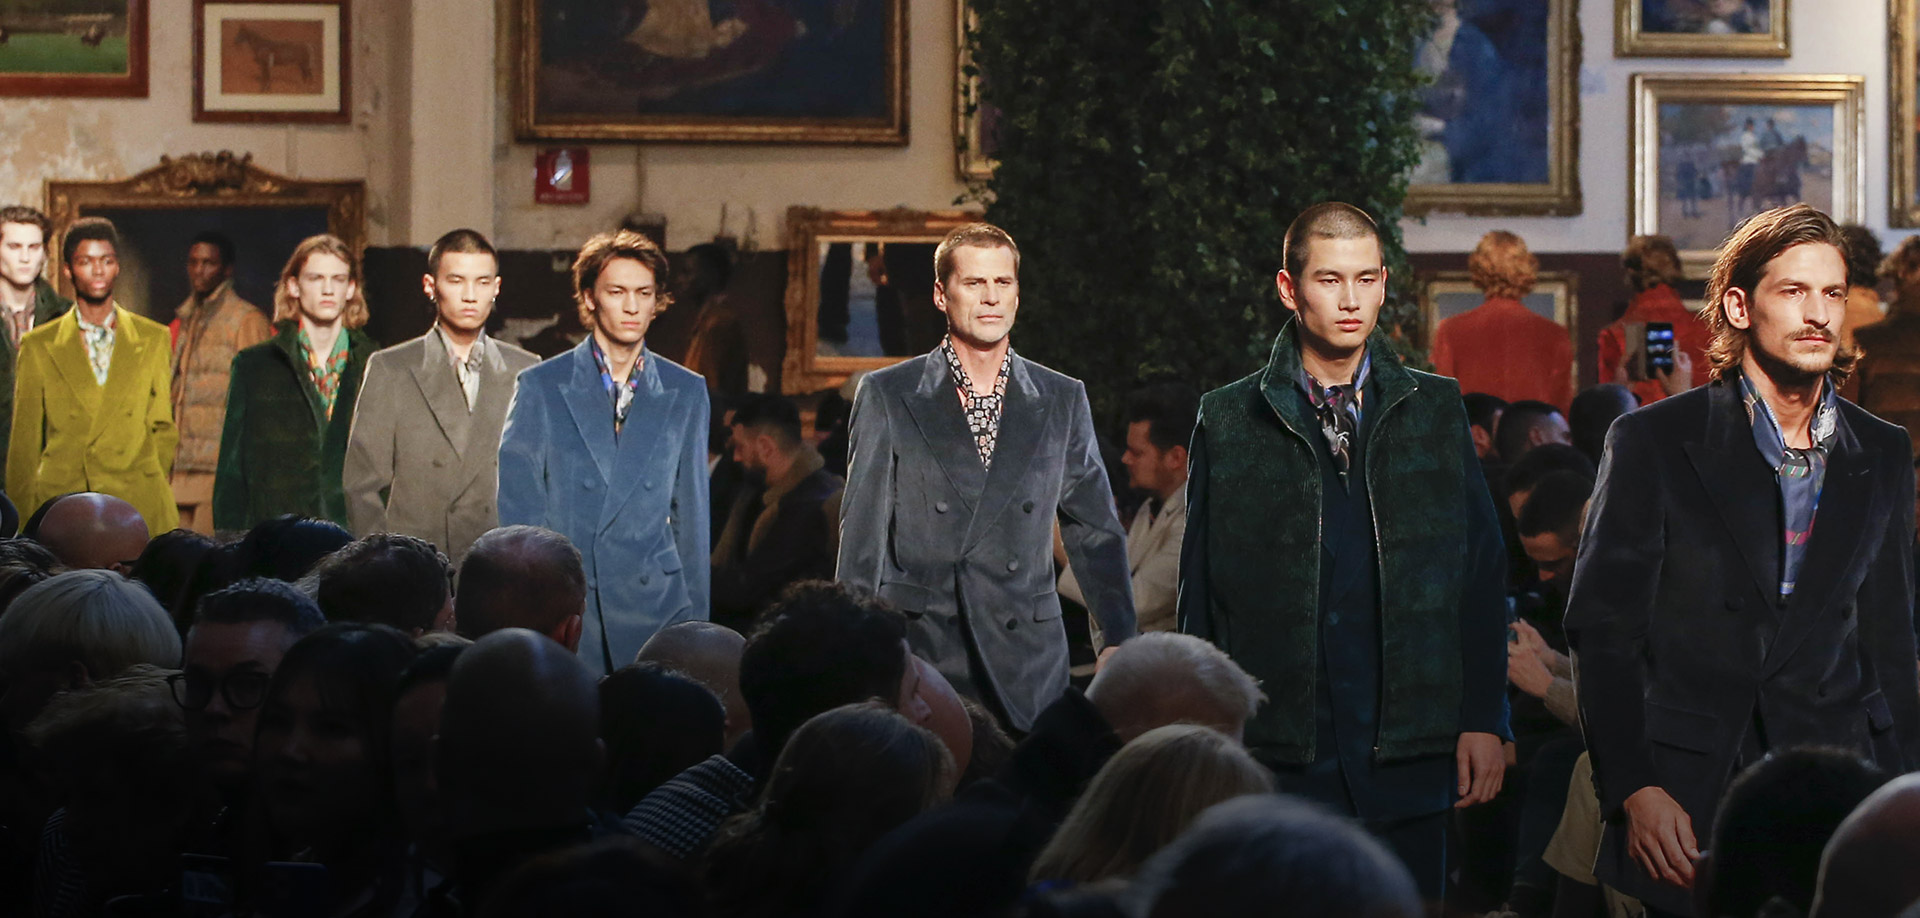 ETRO_MEN'S SPRING SUMMER 2020 FASHION SHOW